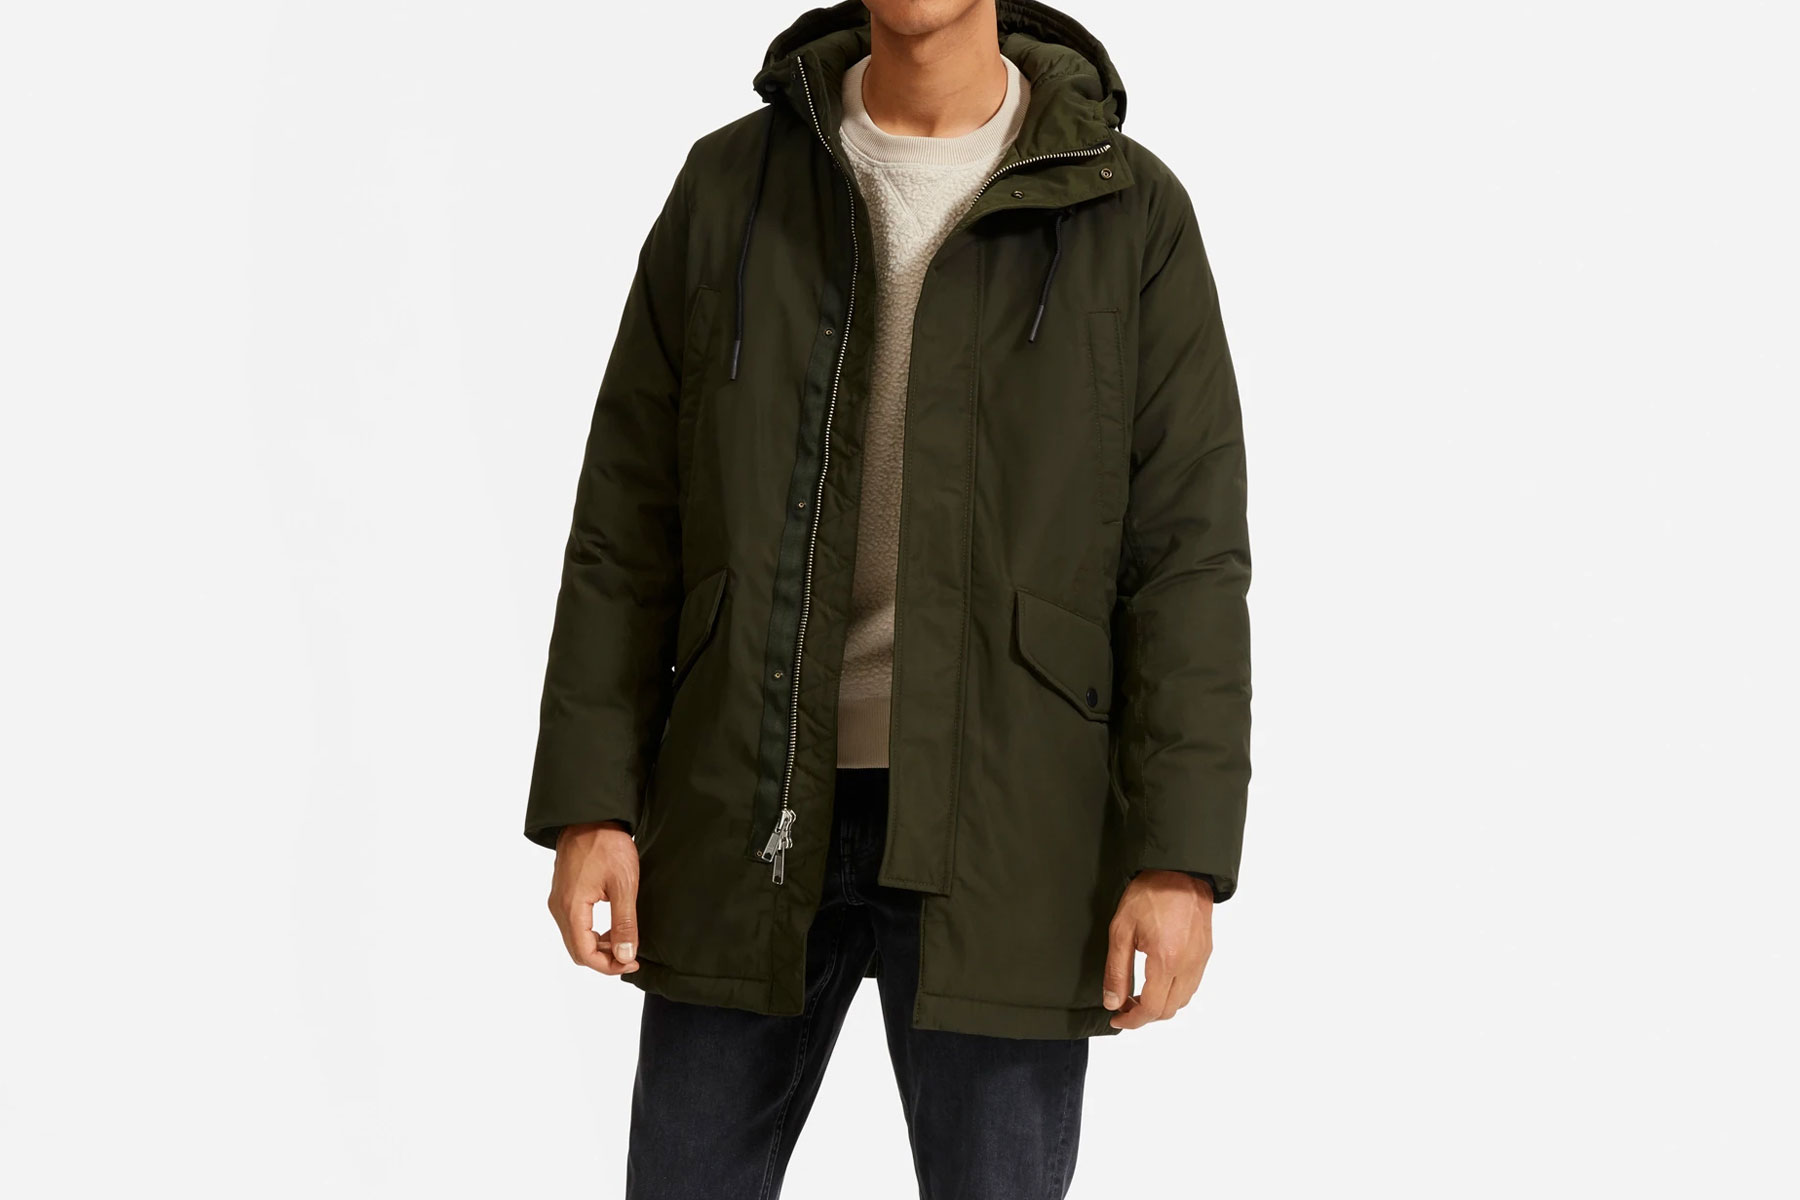 Men's dark green parka coat